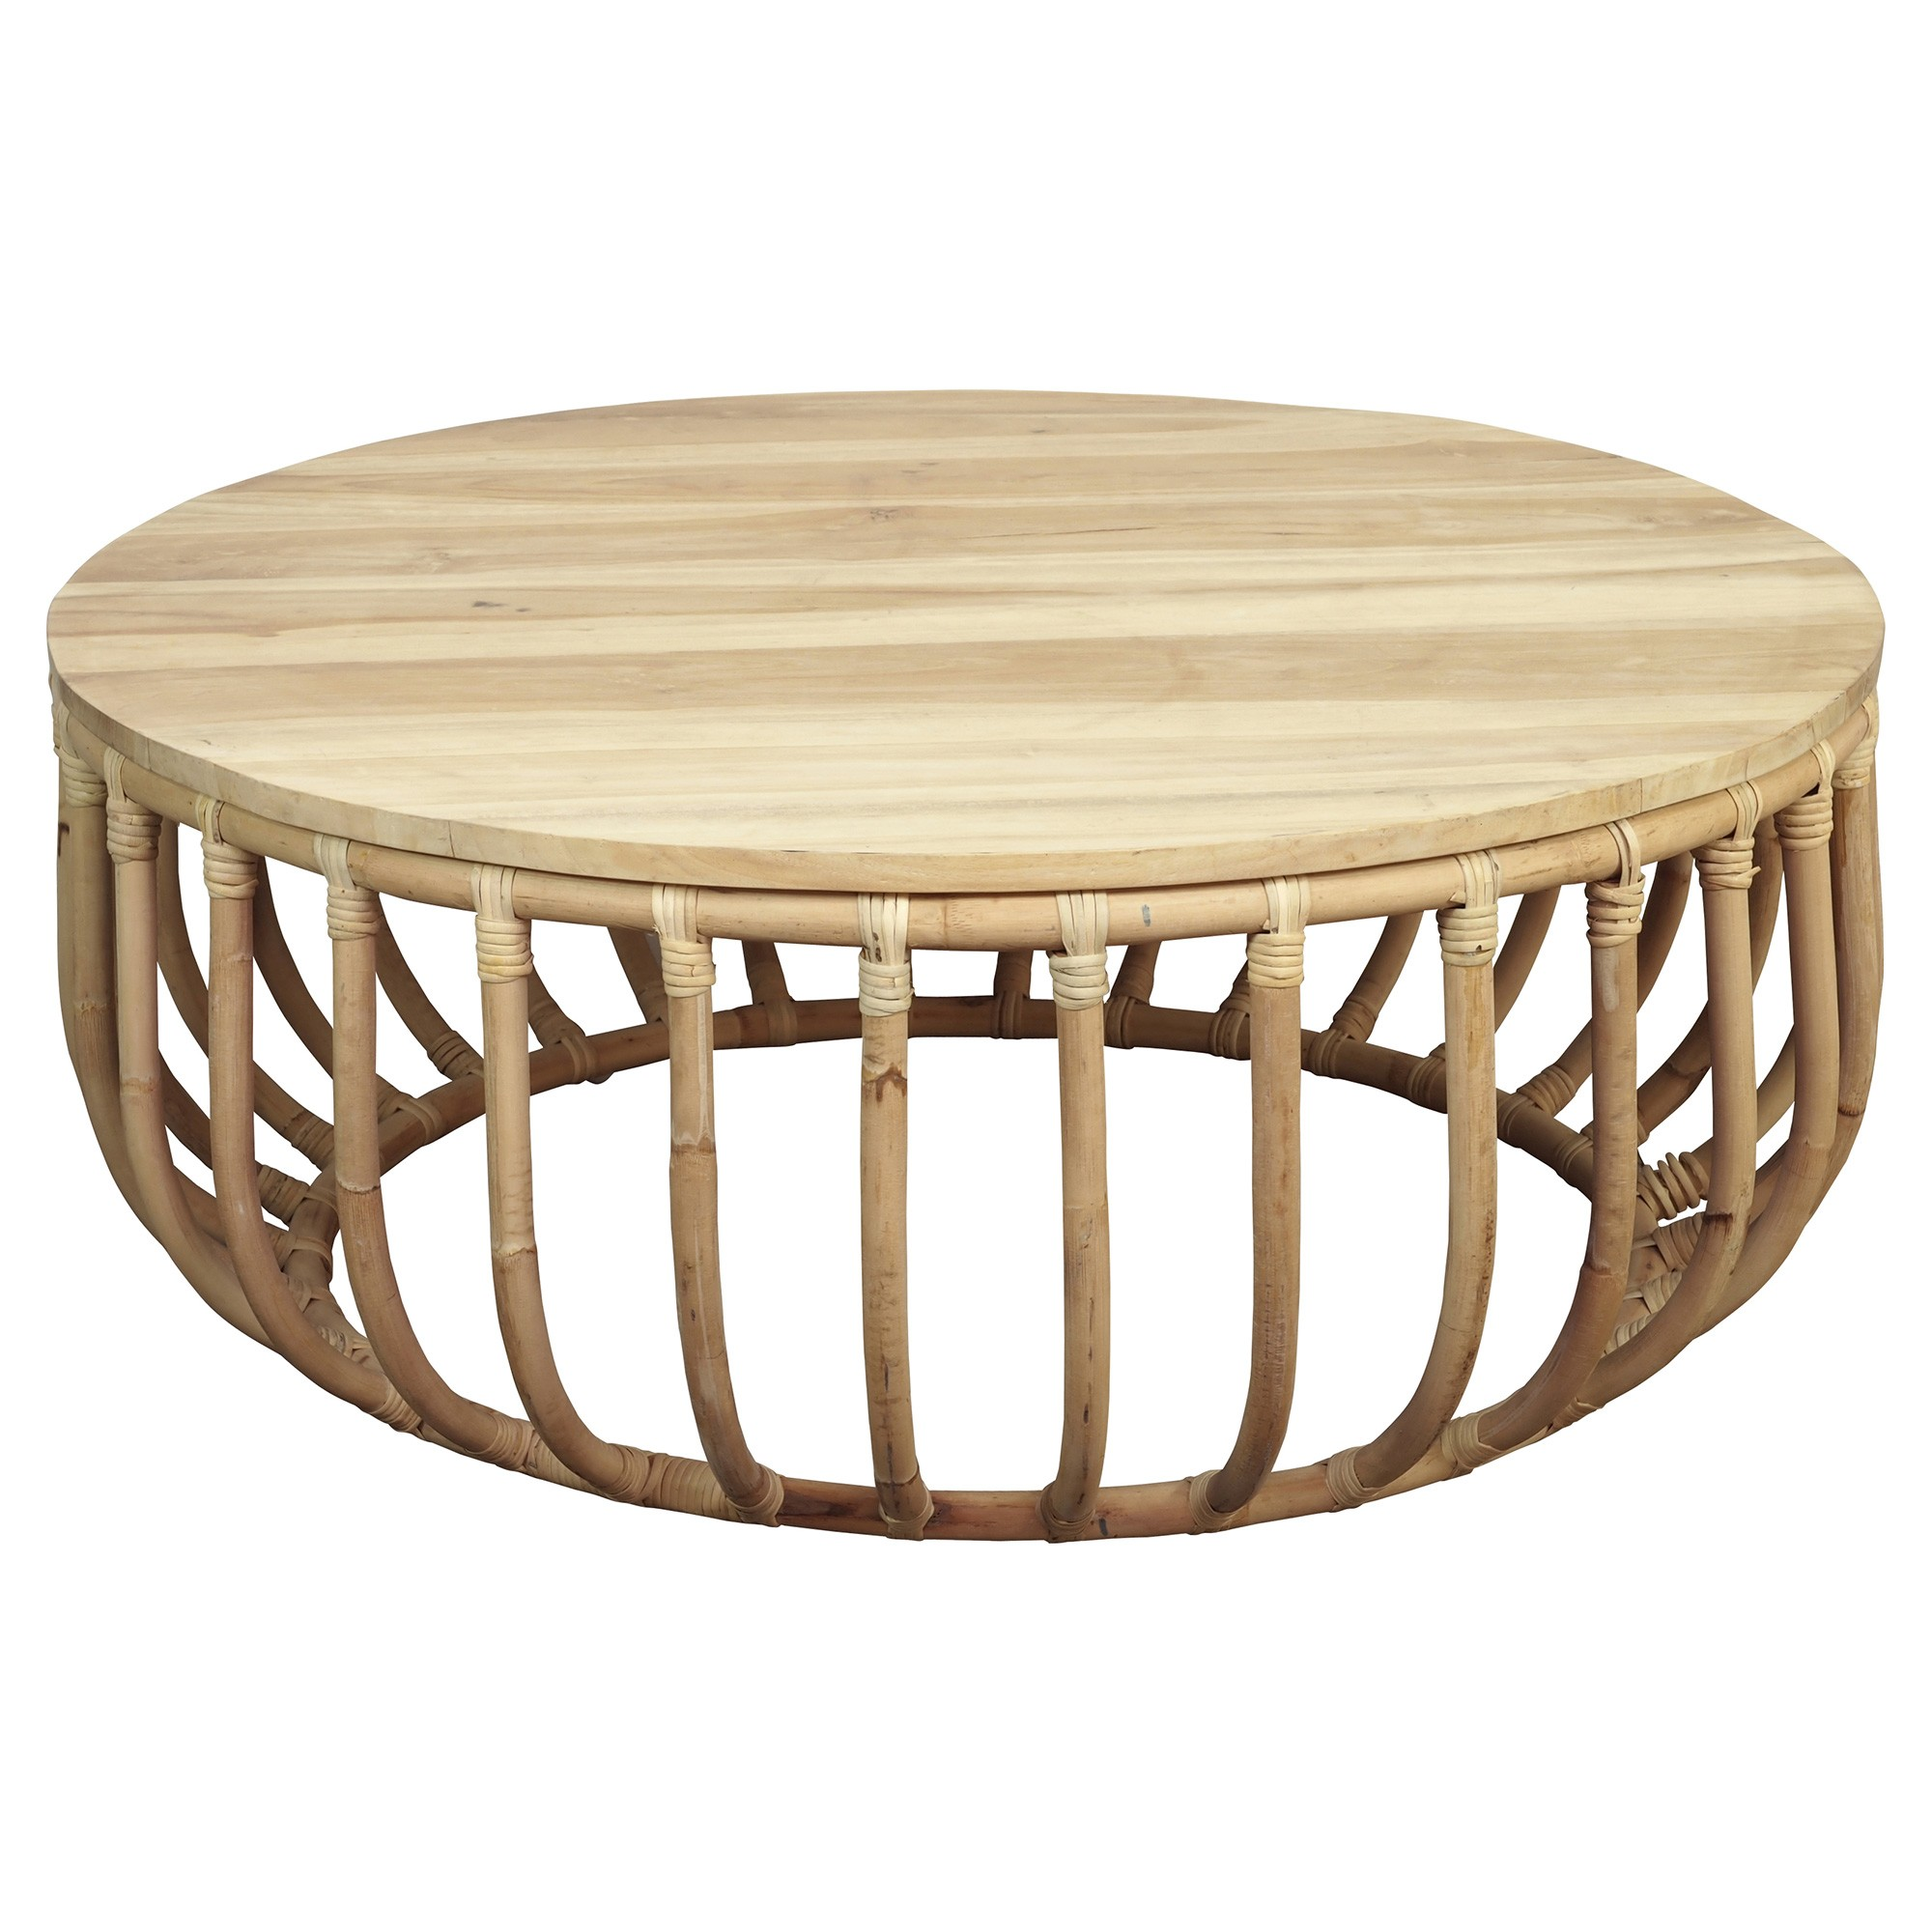 Aikko Teak Top Rattan Round Coffee Table, 95cm, Natural